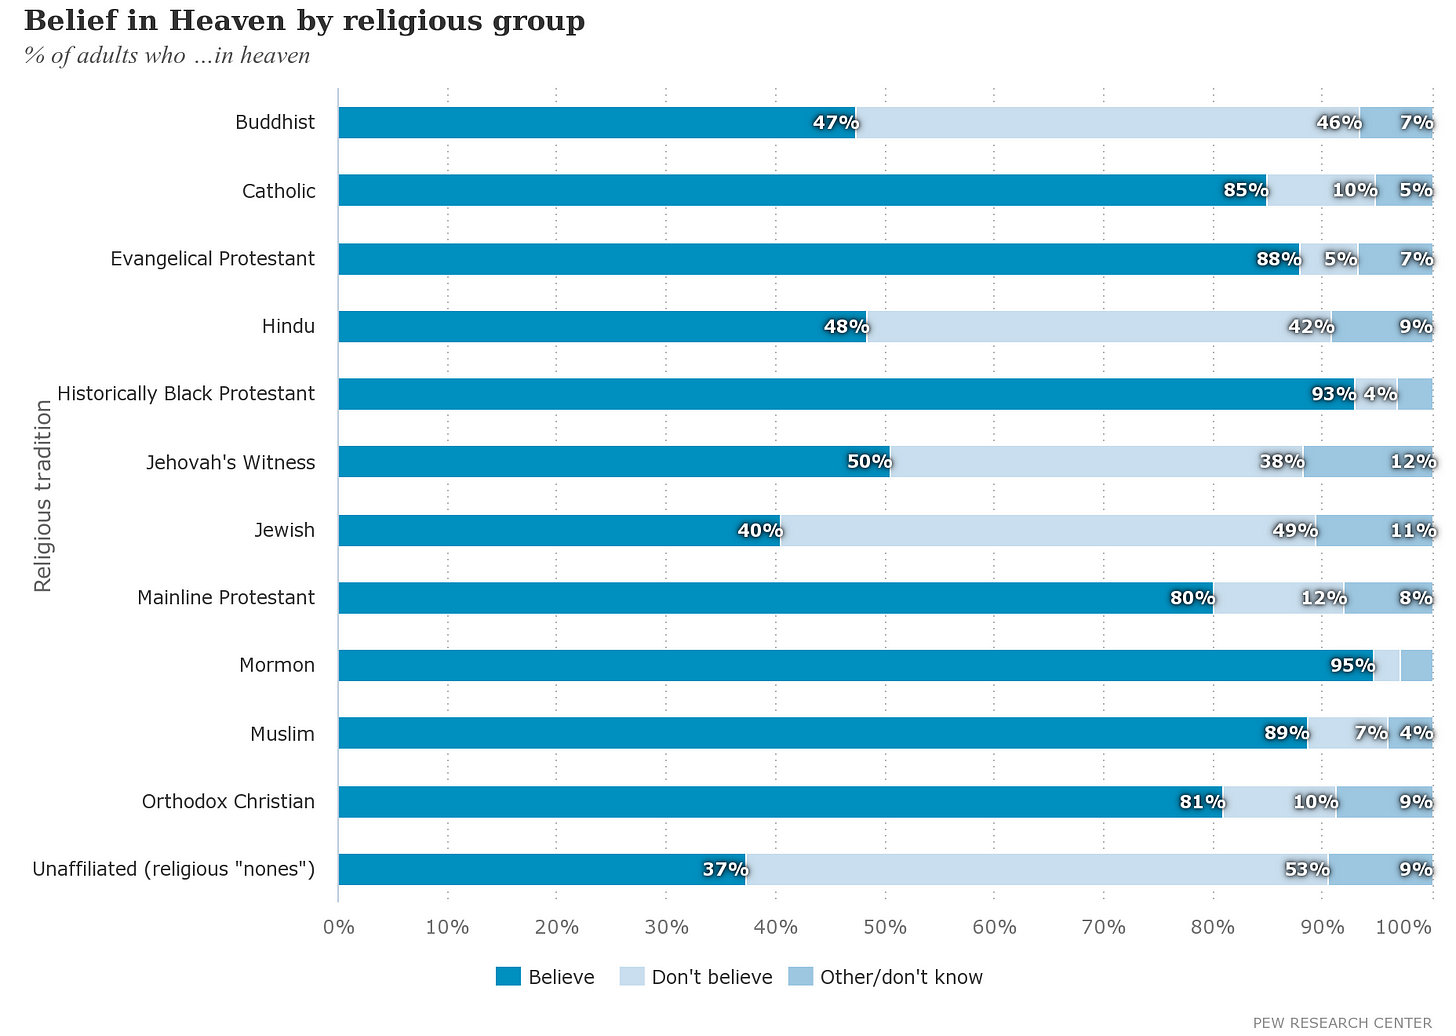 Bar graphs showing % of adults who believe in heaven.